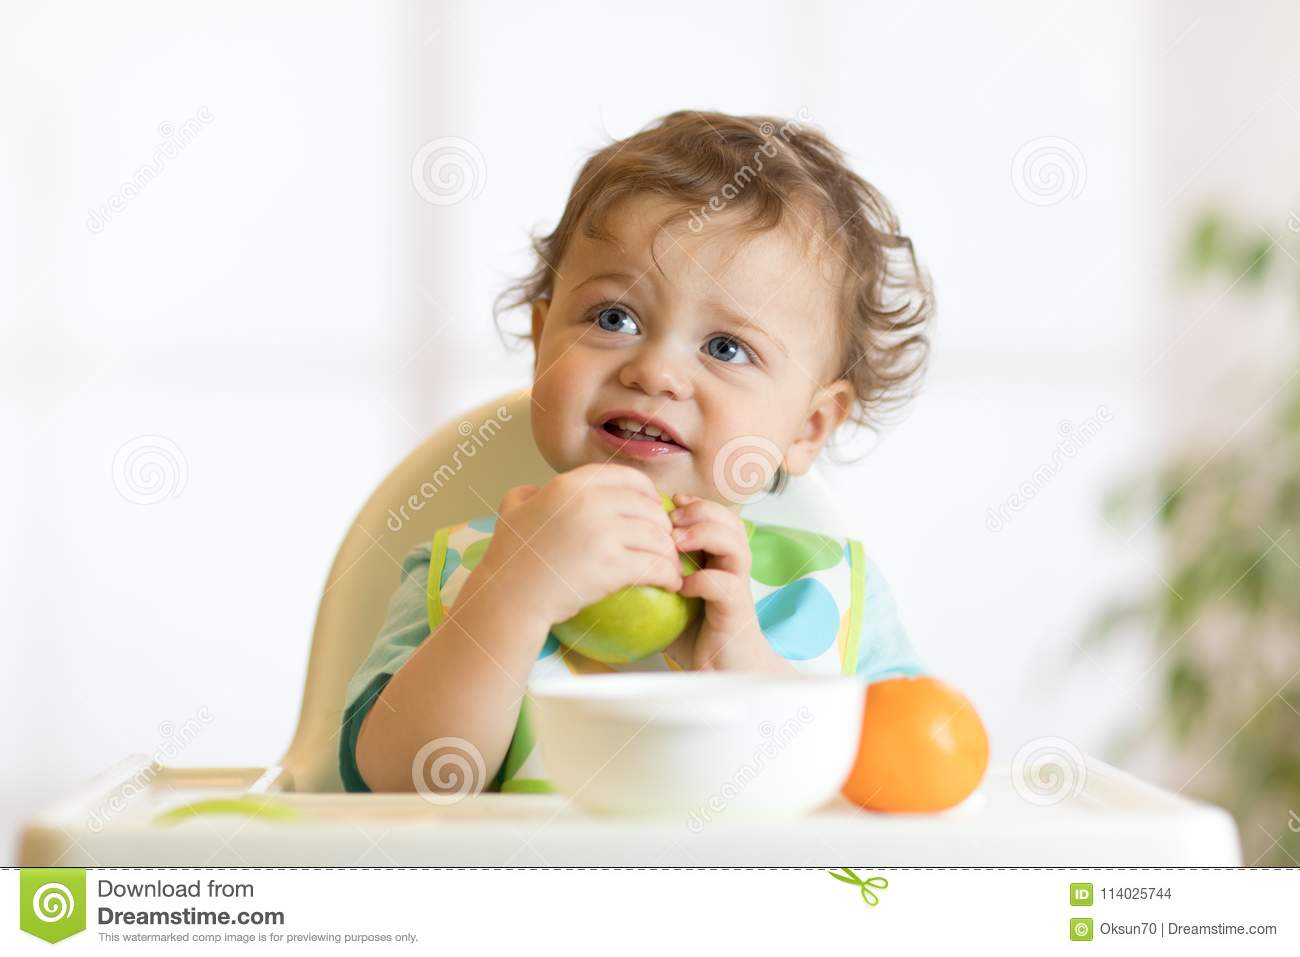 Smiling little kid child baby boy sitting in highchair and eating big green apple fruit portrait indoors